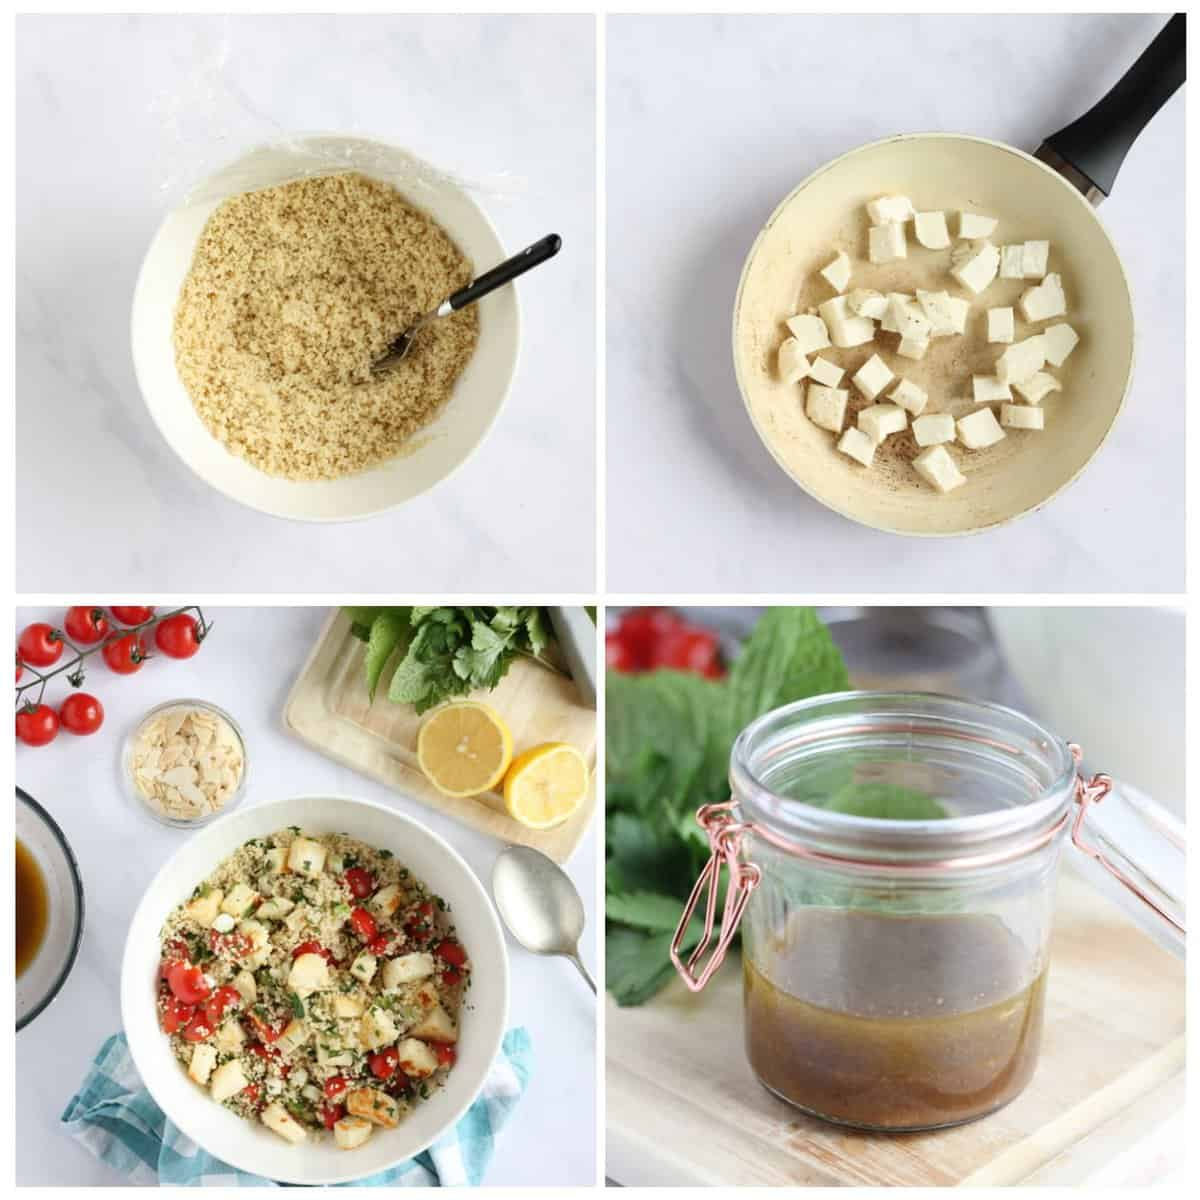 Step by step photo instructions for making halloumi couscous part 2